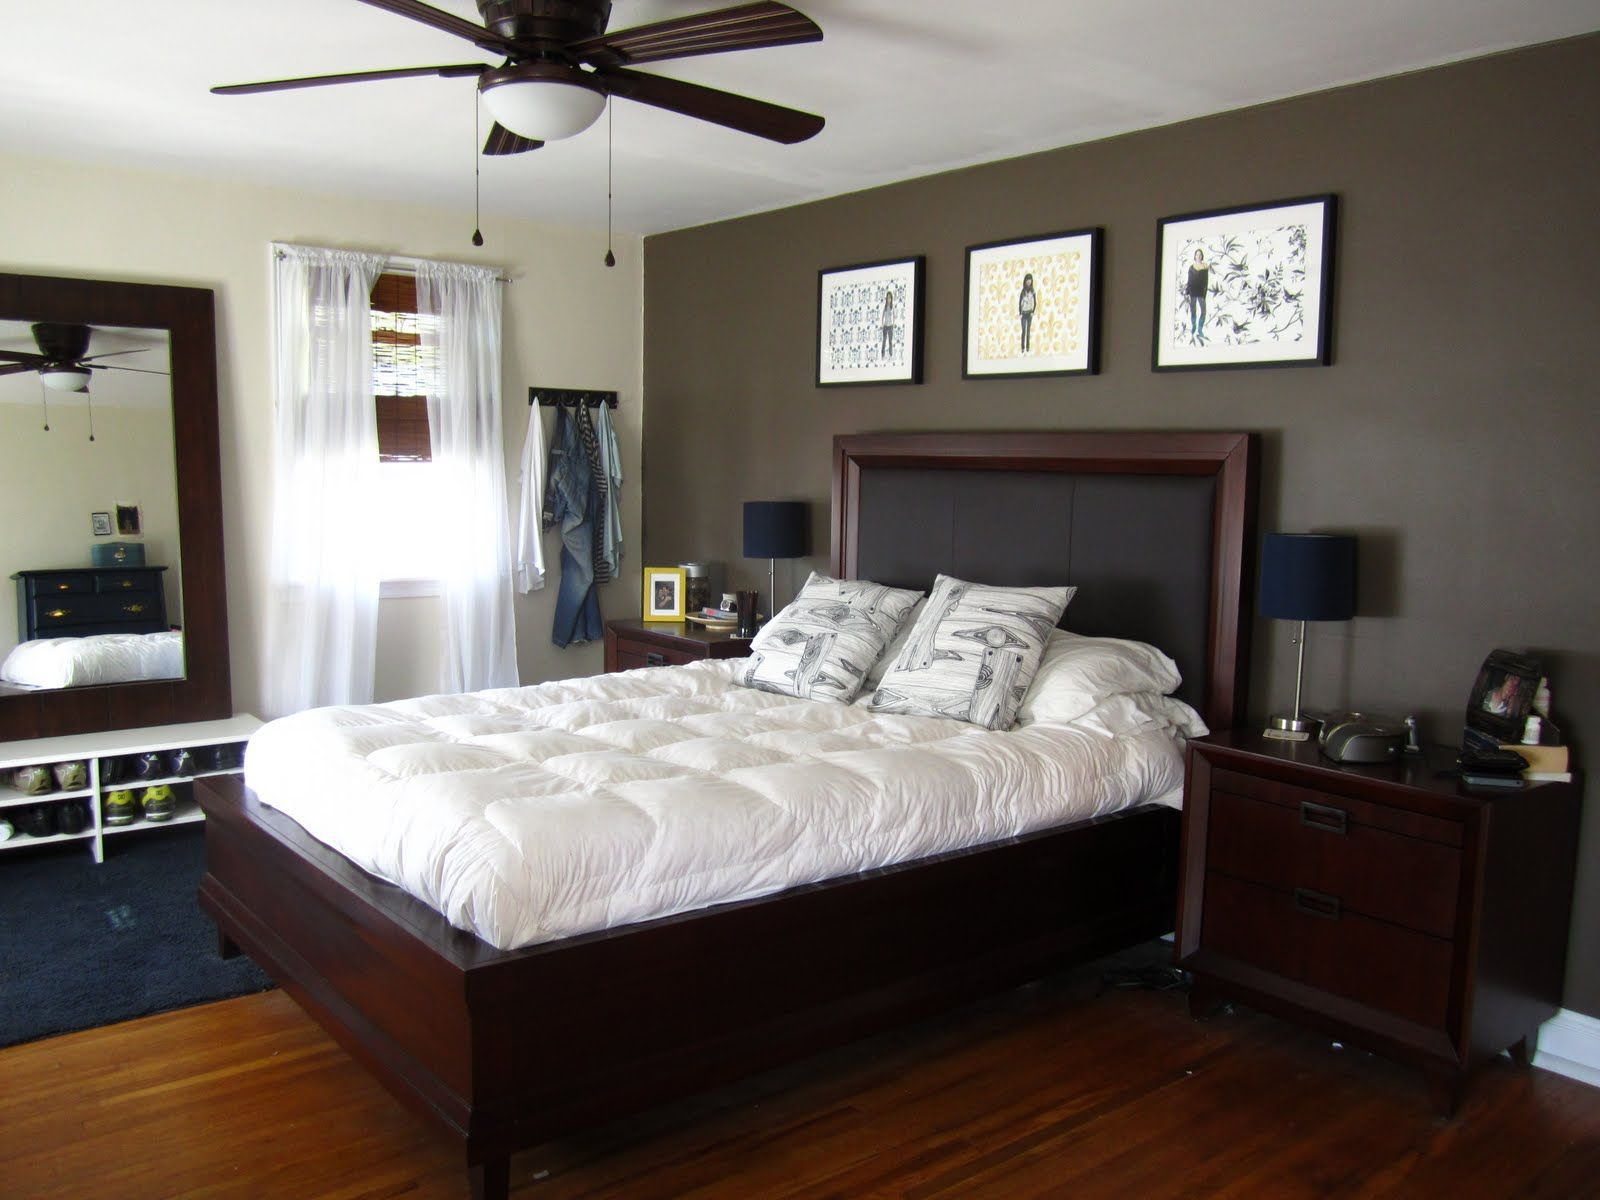 Bedroom fancy white tufted bed with dark espresso queen size platform bed and brown paint wall also terrific ceiling lamp fan attractive bedroom accent